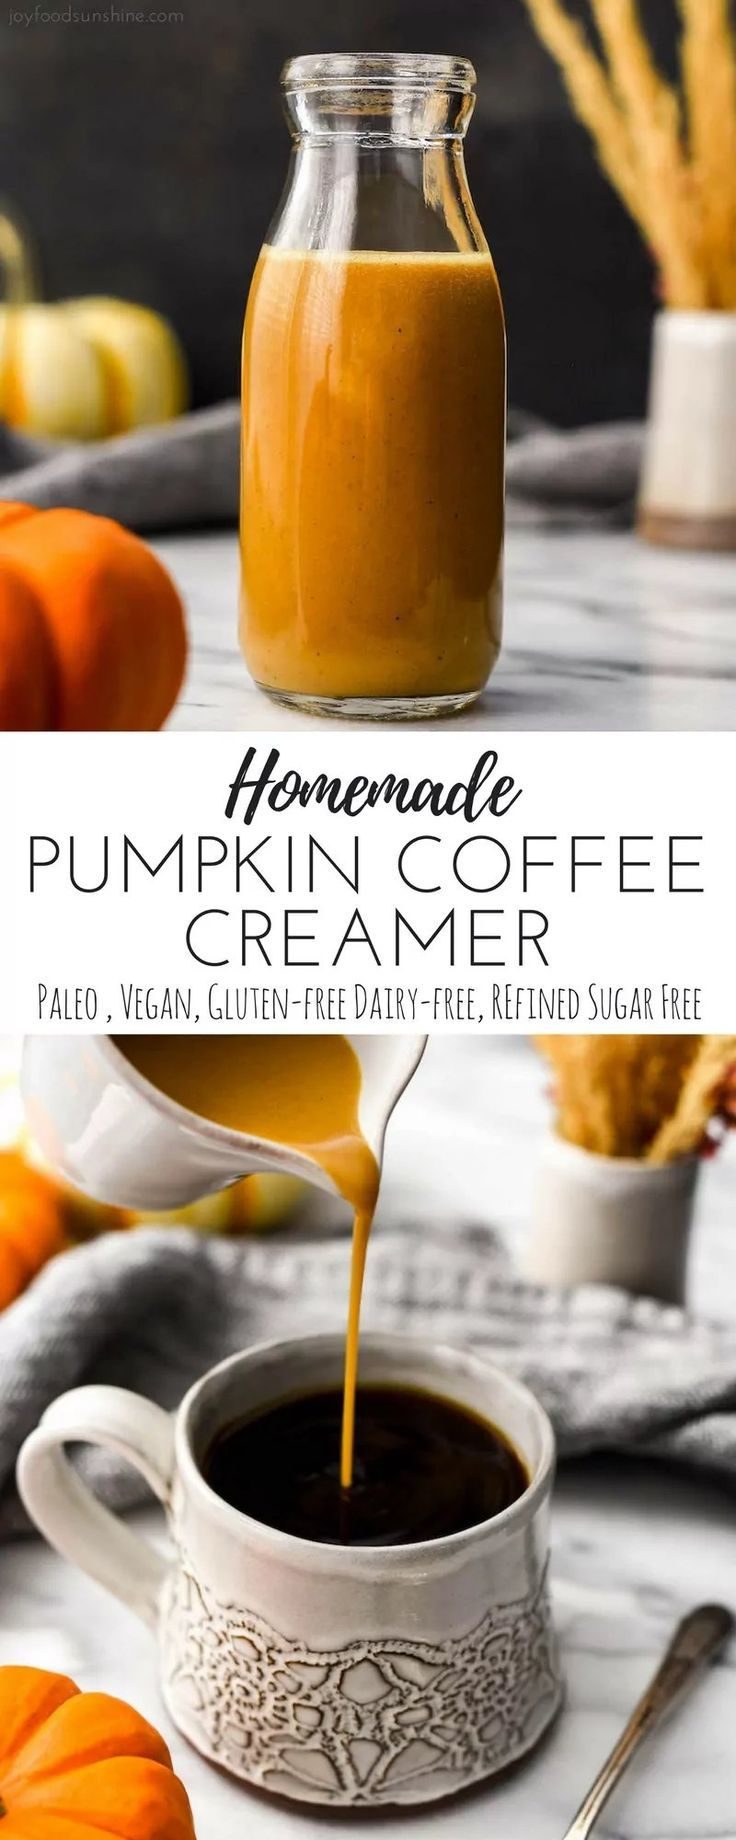 Paleo & Vegan Homemade Pumpkin Coffee Creamer recipe is a great addition to a cozy fall morning! It's gluten-free, grain-free, dairy-free and has no refined sugar but is still irresistibly creamy and delicious!